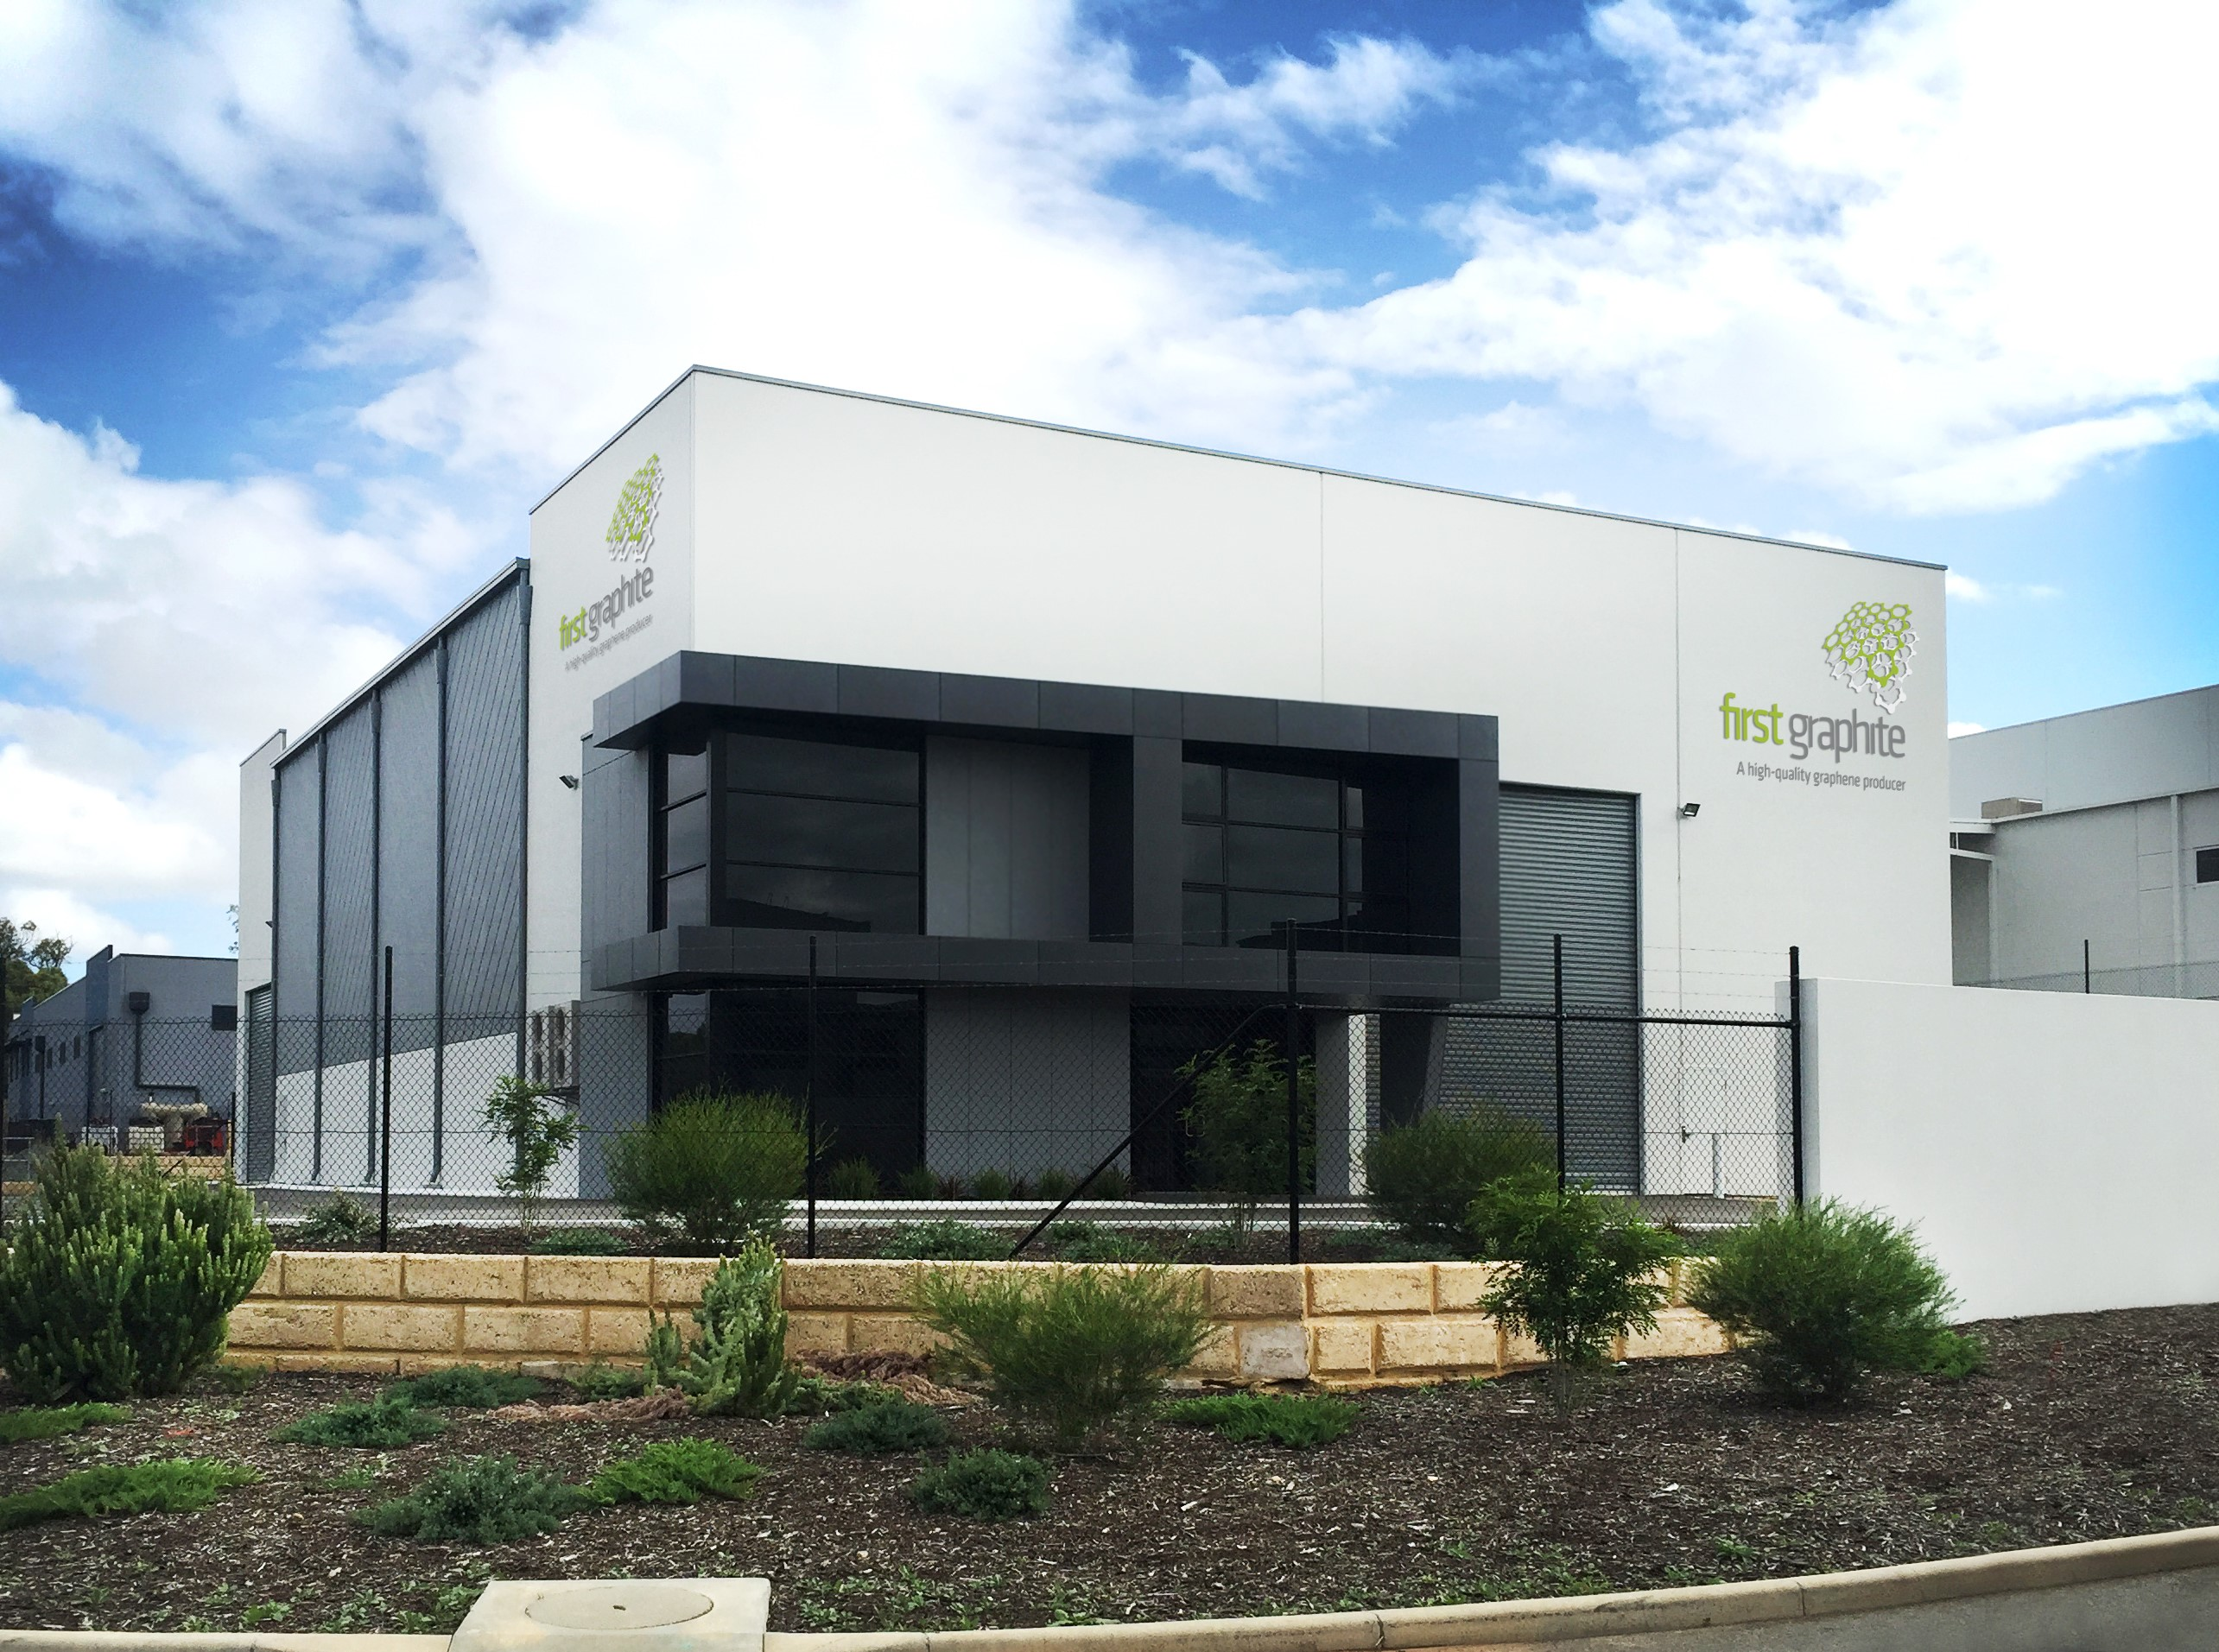 First Graphite Approval has now been received to construct a Commercial Graphene Facility at FGRs premises in the Australian Marine Complex Henderson